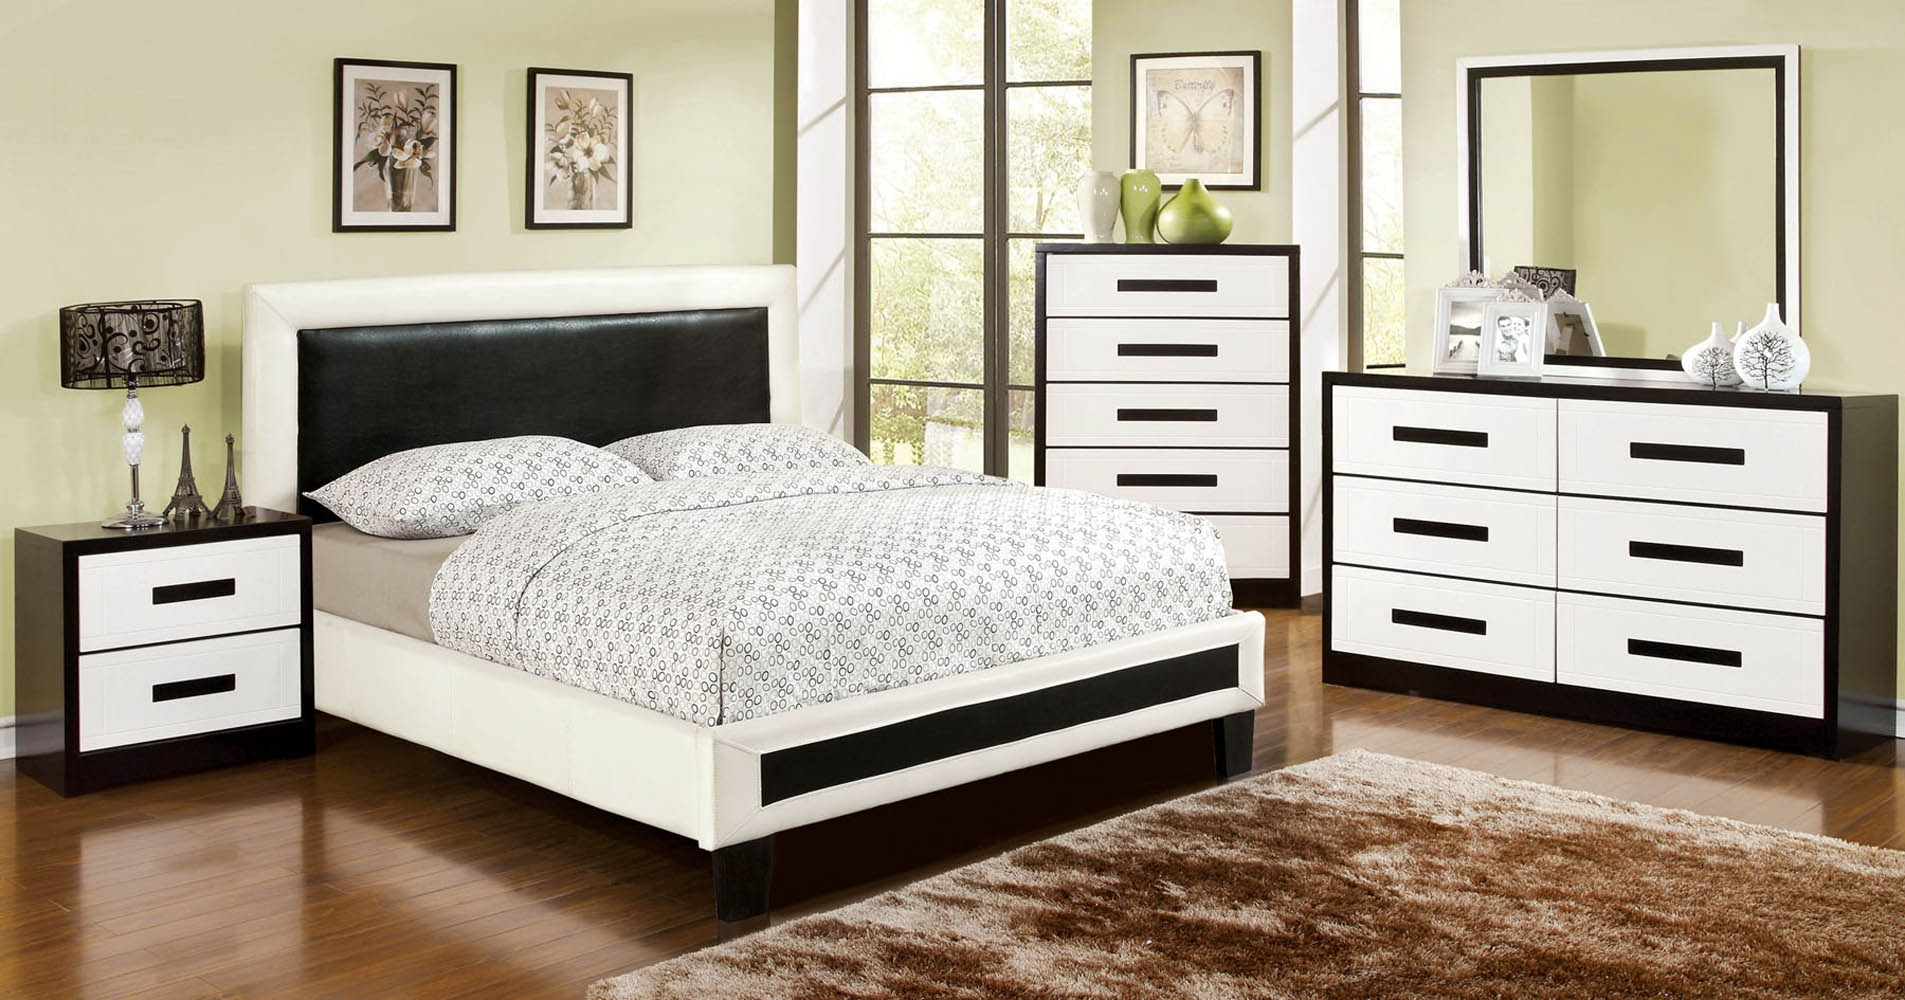 European Style Bed Frames